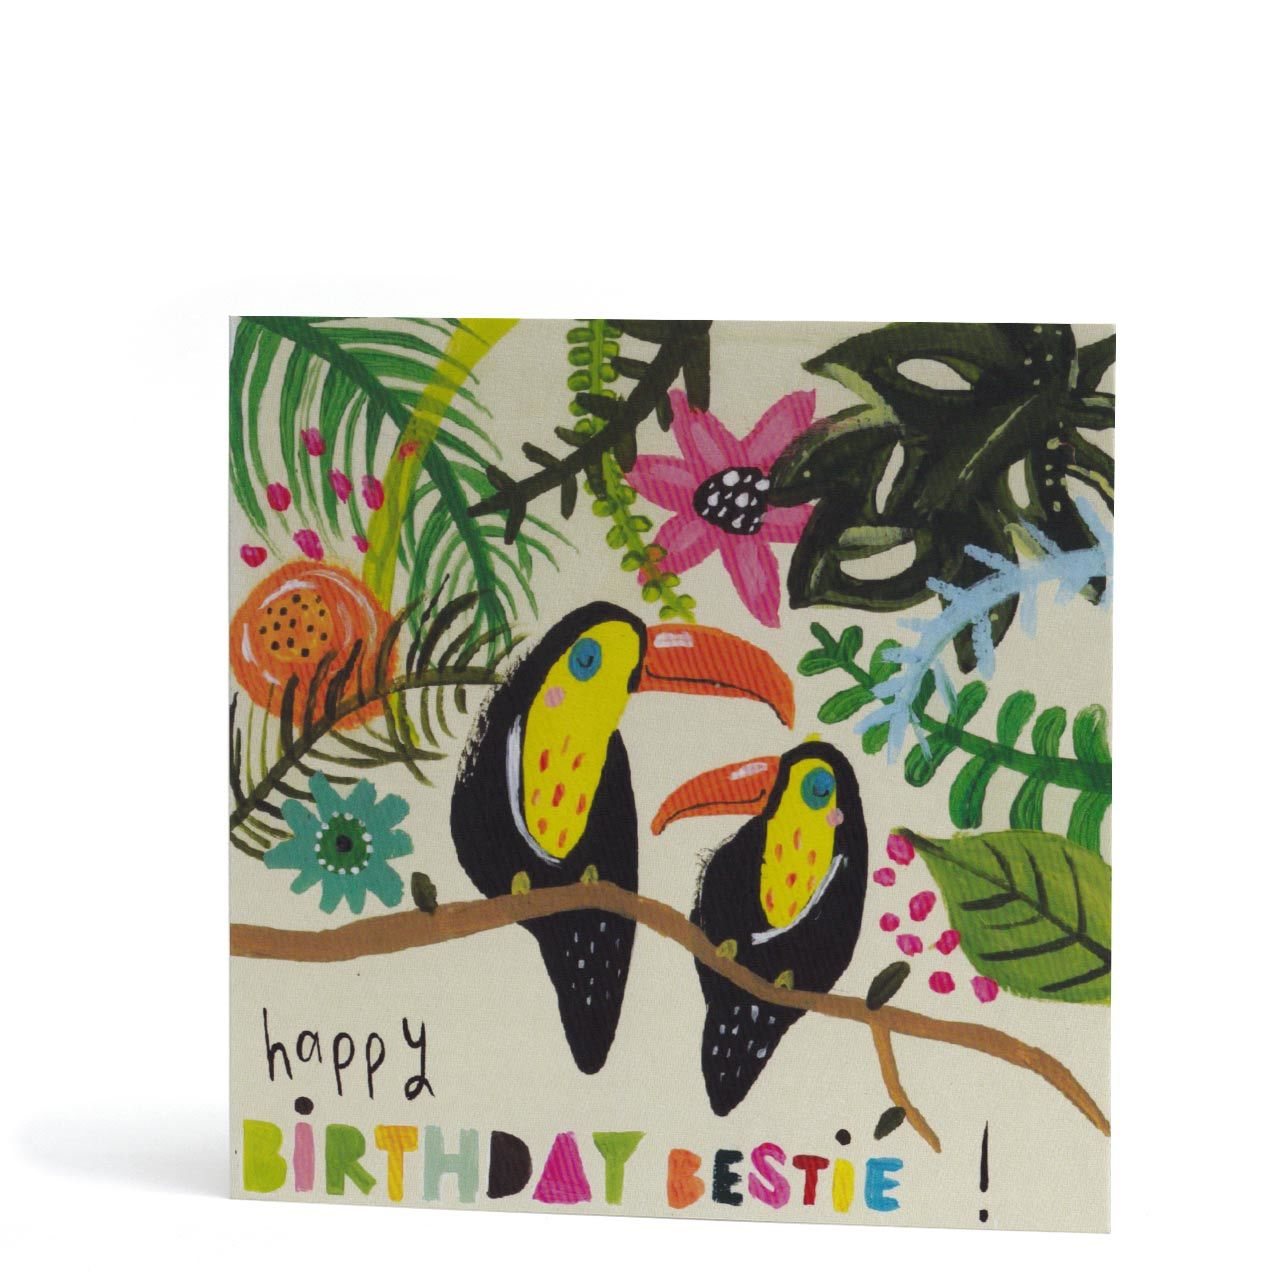 Happy Birthday Bestie Greeting Card